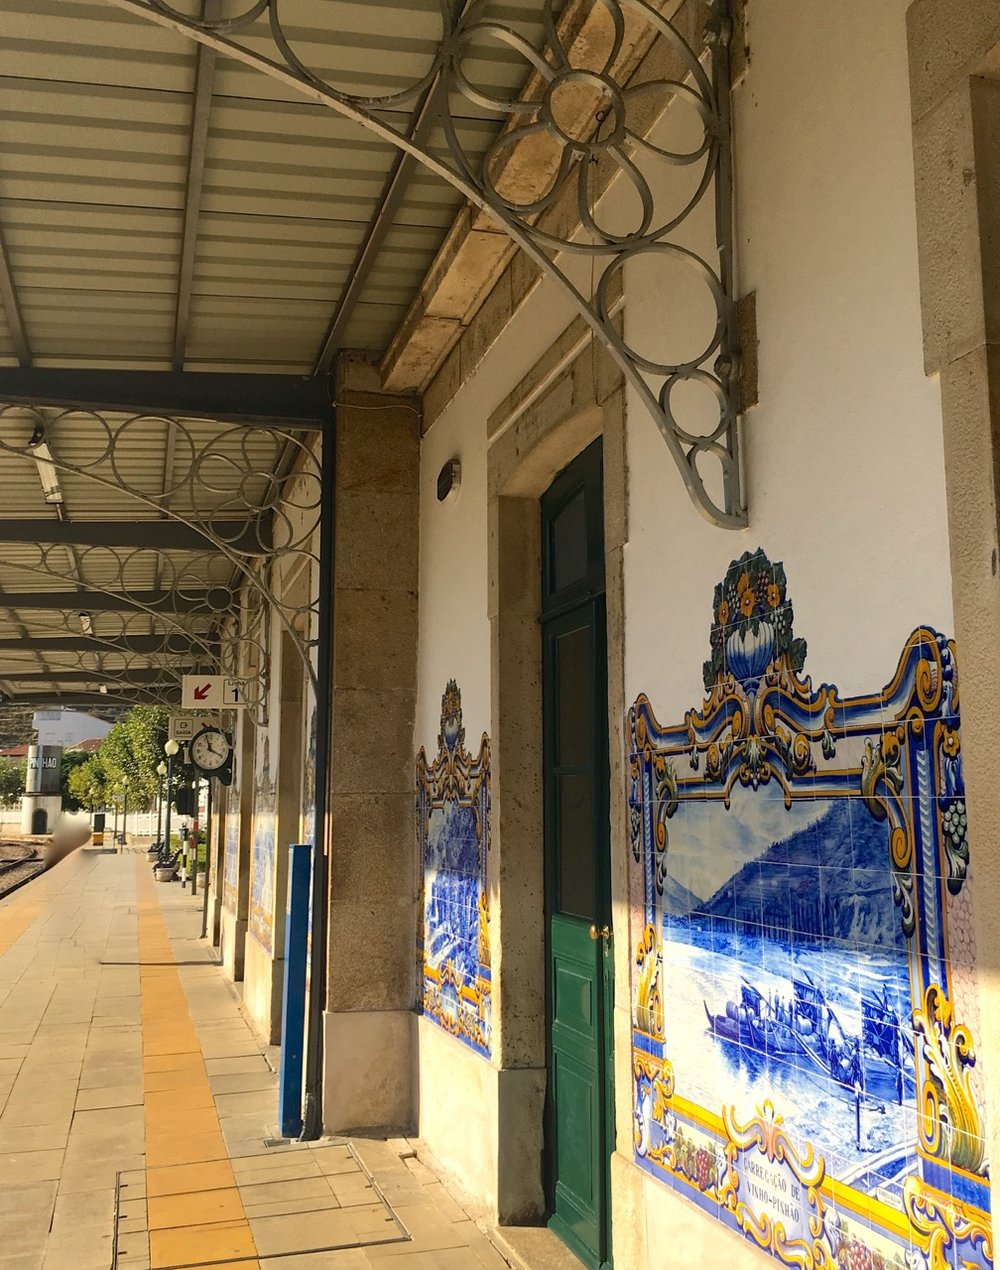 The tiled murals at Pinhao station were a tourist attraction in their own right